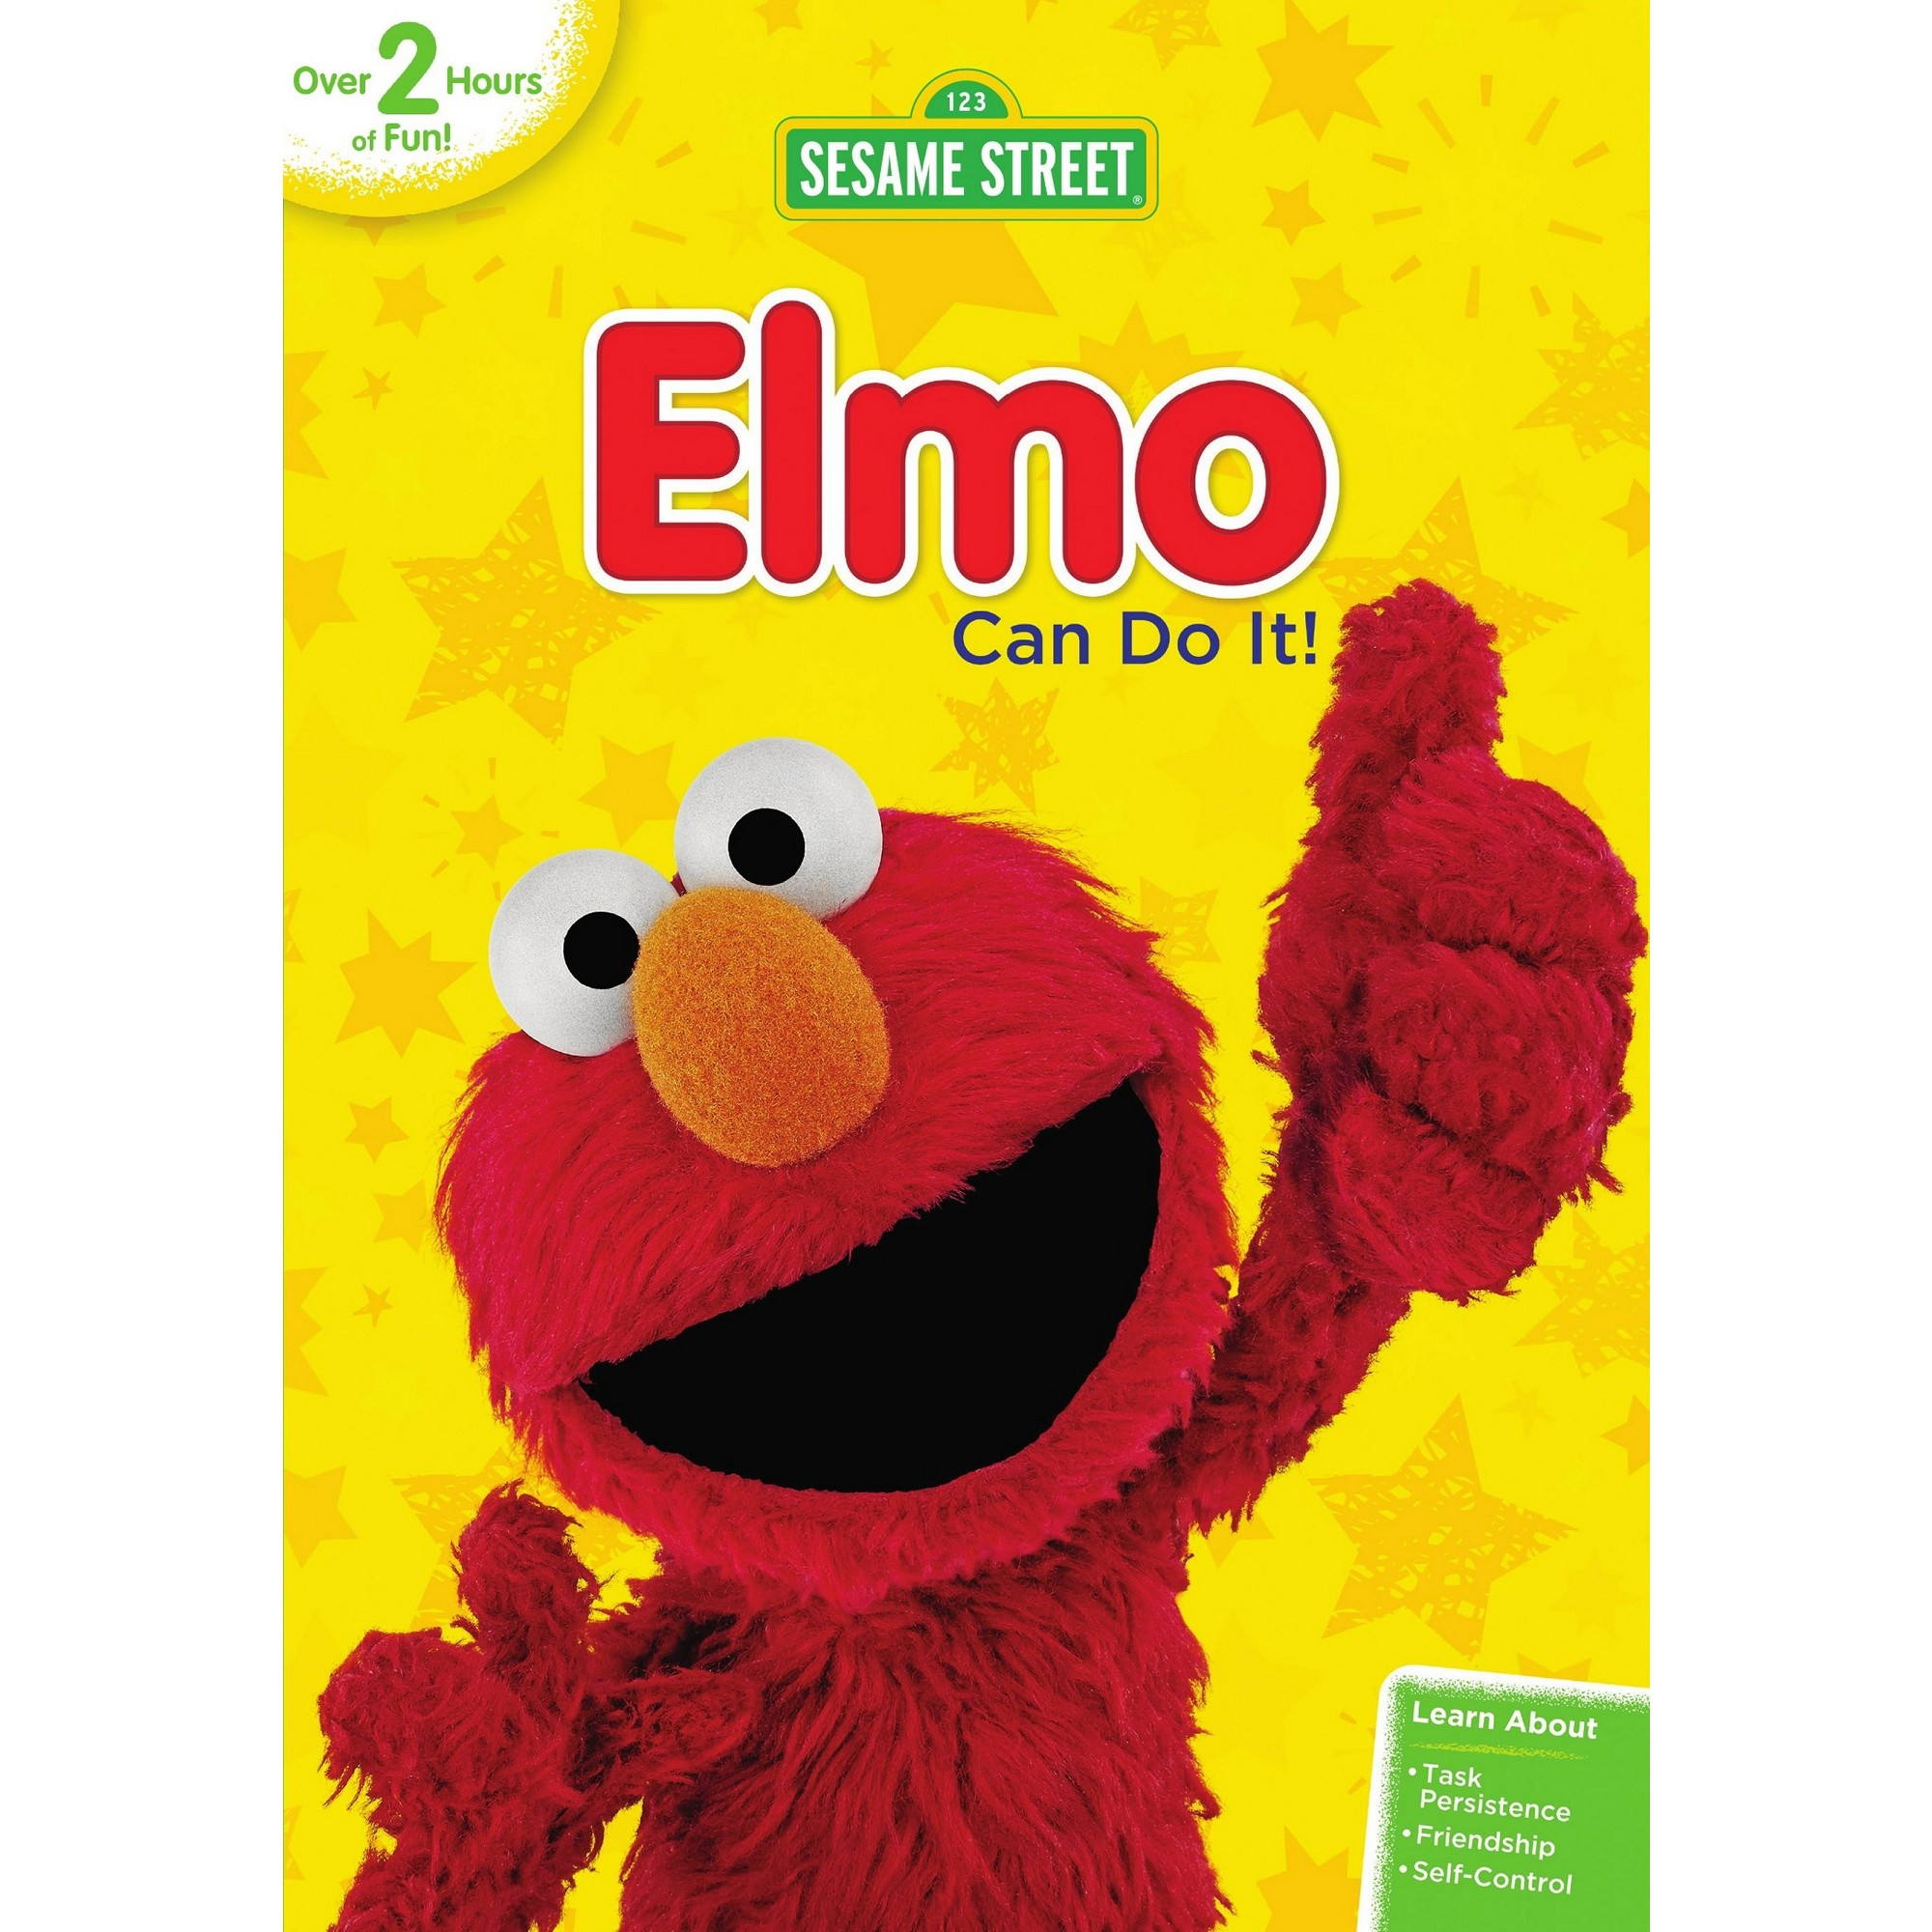 Sesame Street features Elmo the Musical Pizza game! Kids